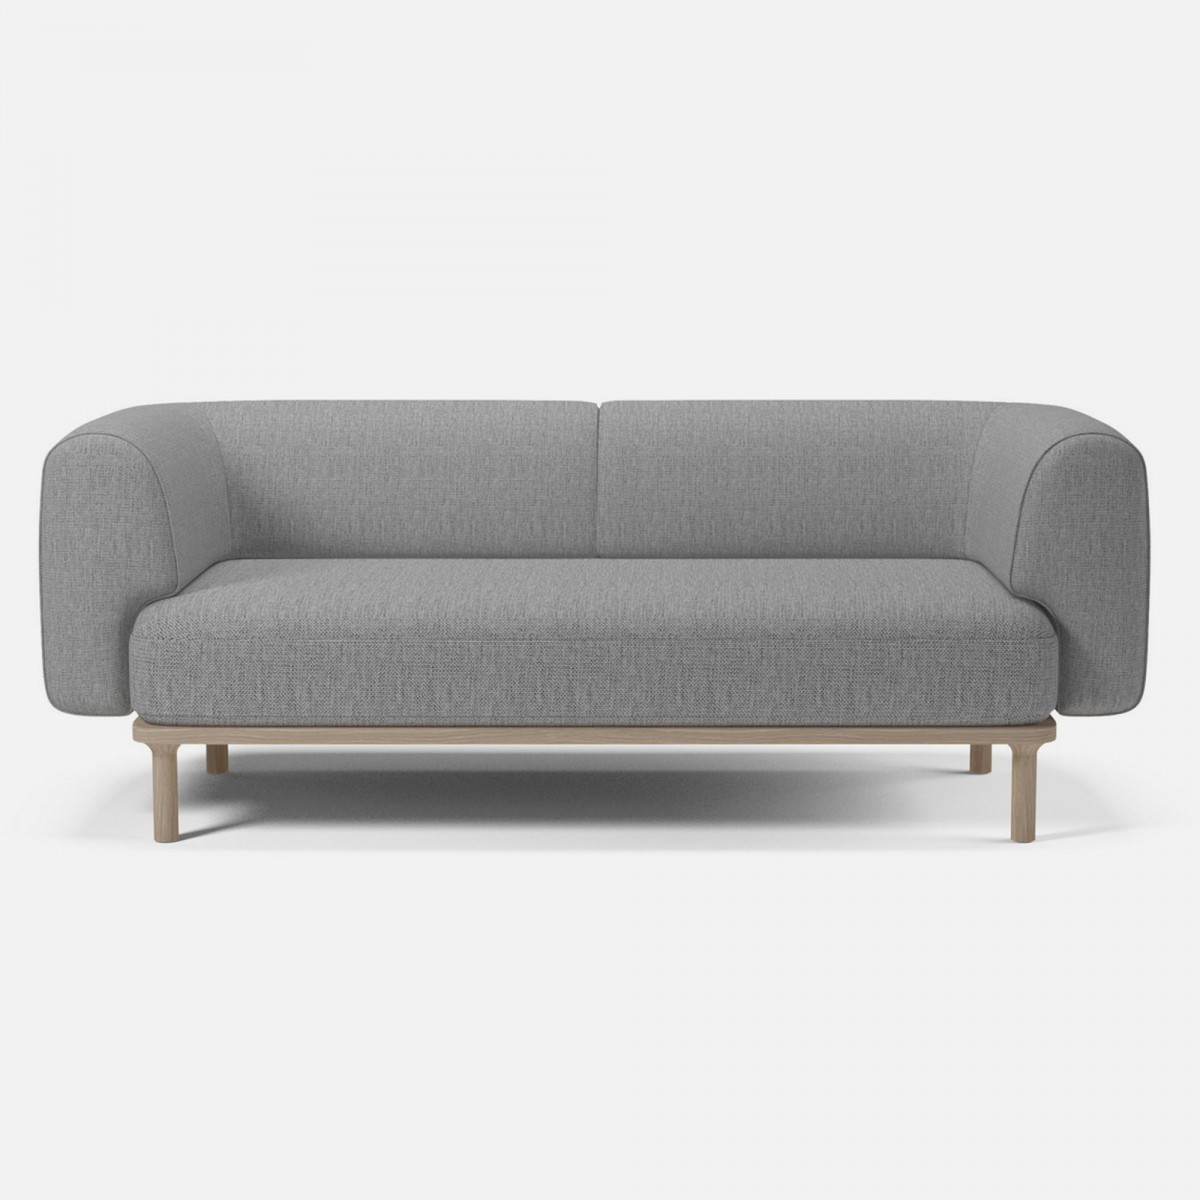 abbie sofa navy white leather for cheap home the honoroak